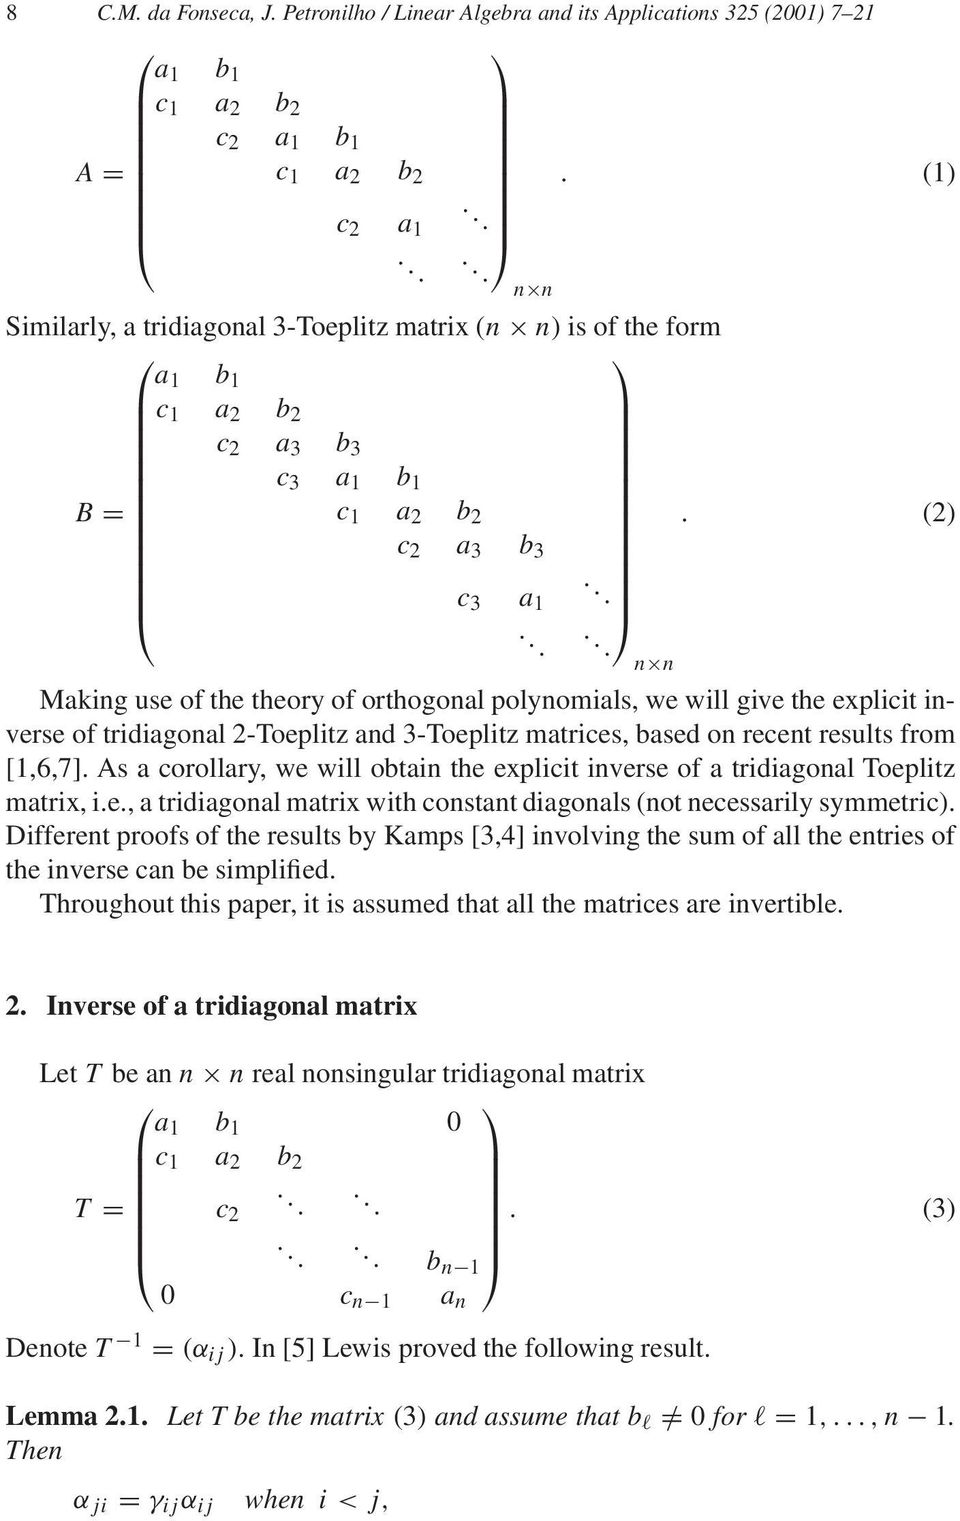 tridiagonal 2-Toeplitz and 3-Toeplitz matrices, based on recent results from [1,6,7] As a corollary, we will obtain the explicit inverse of a tridiagonal Toeplitz matrix, ie, a tridiagonal matrix